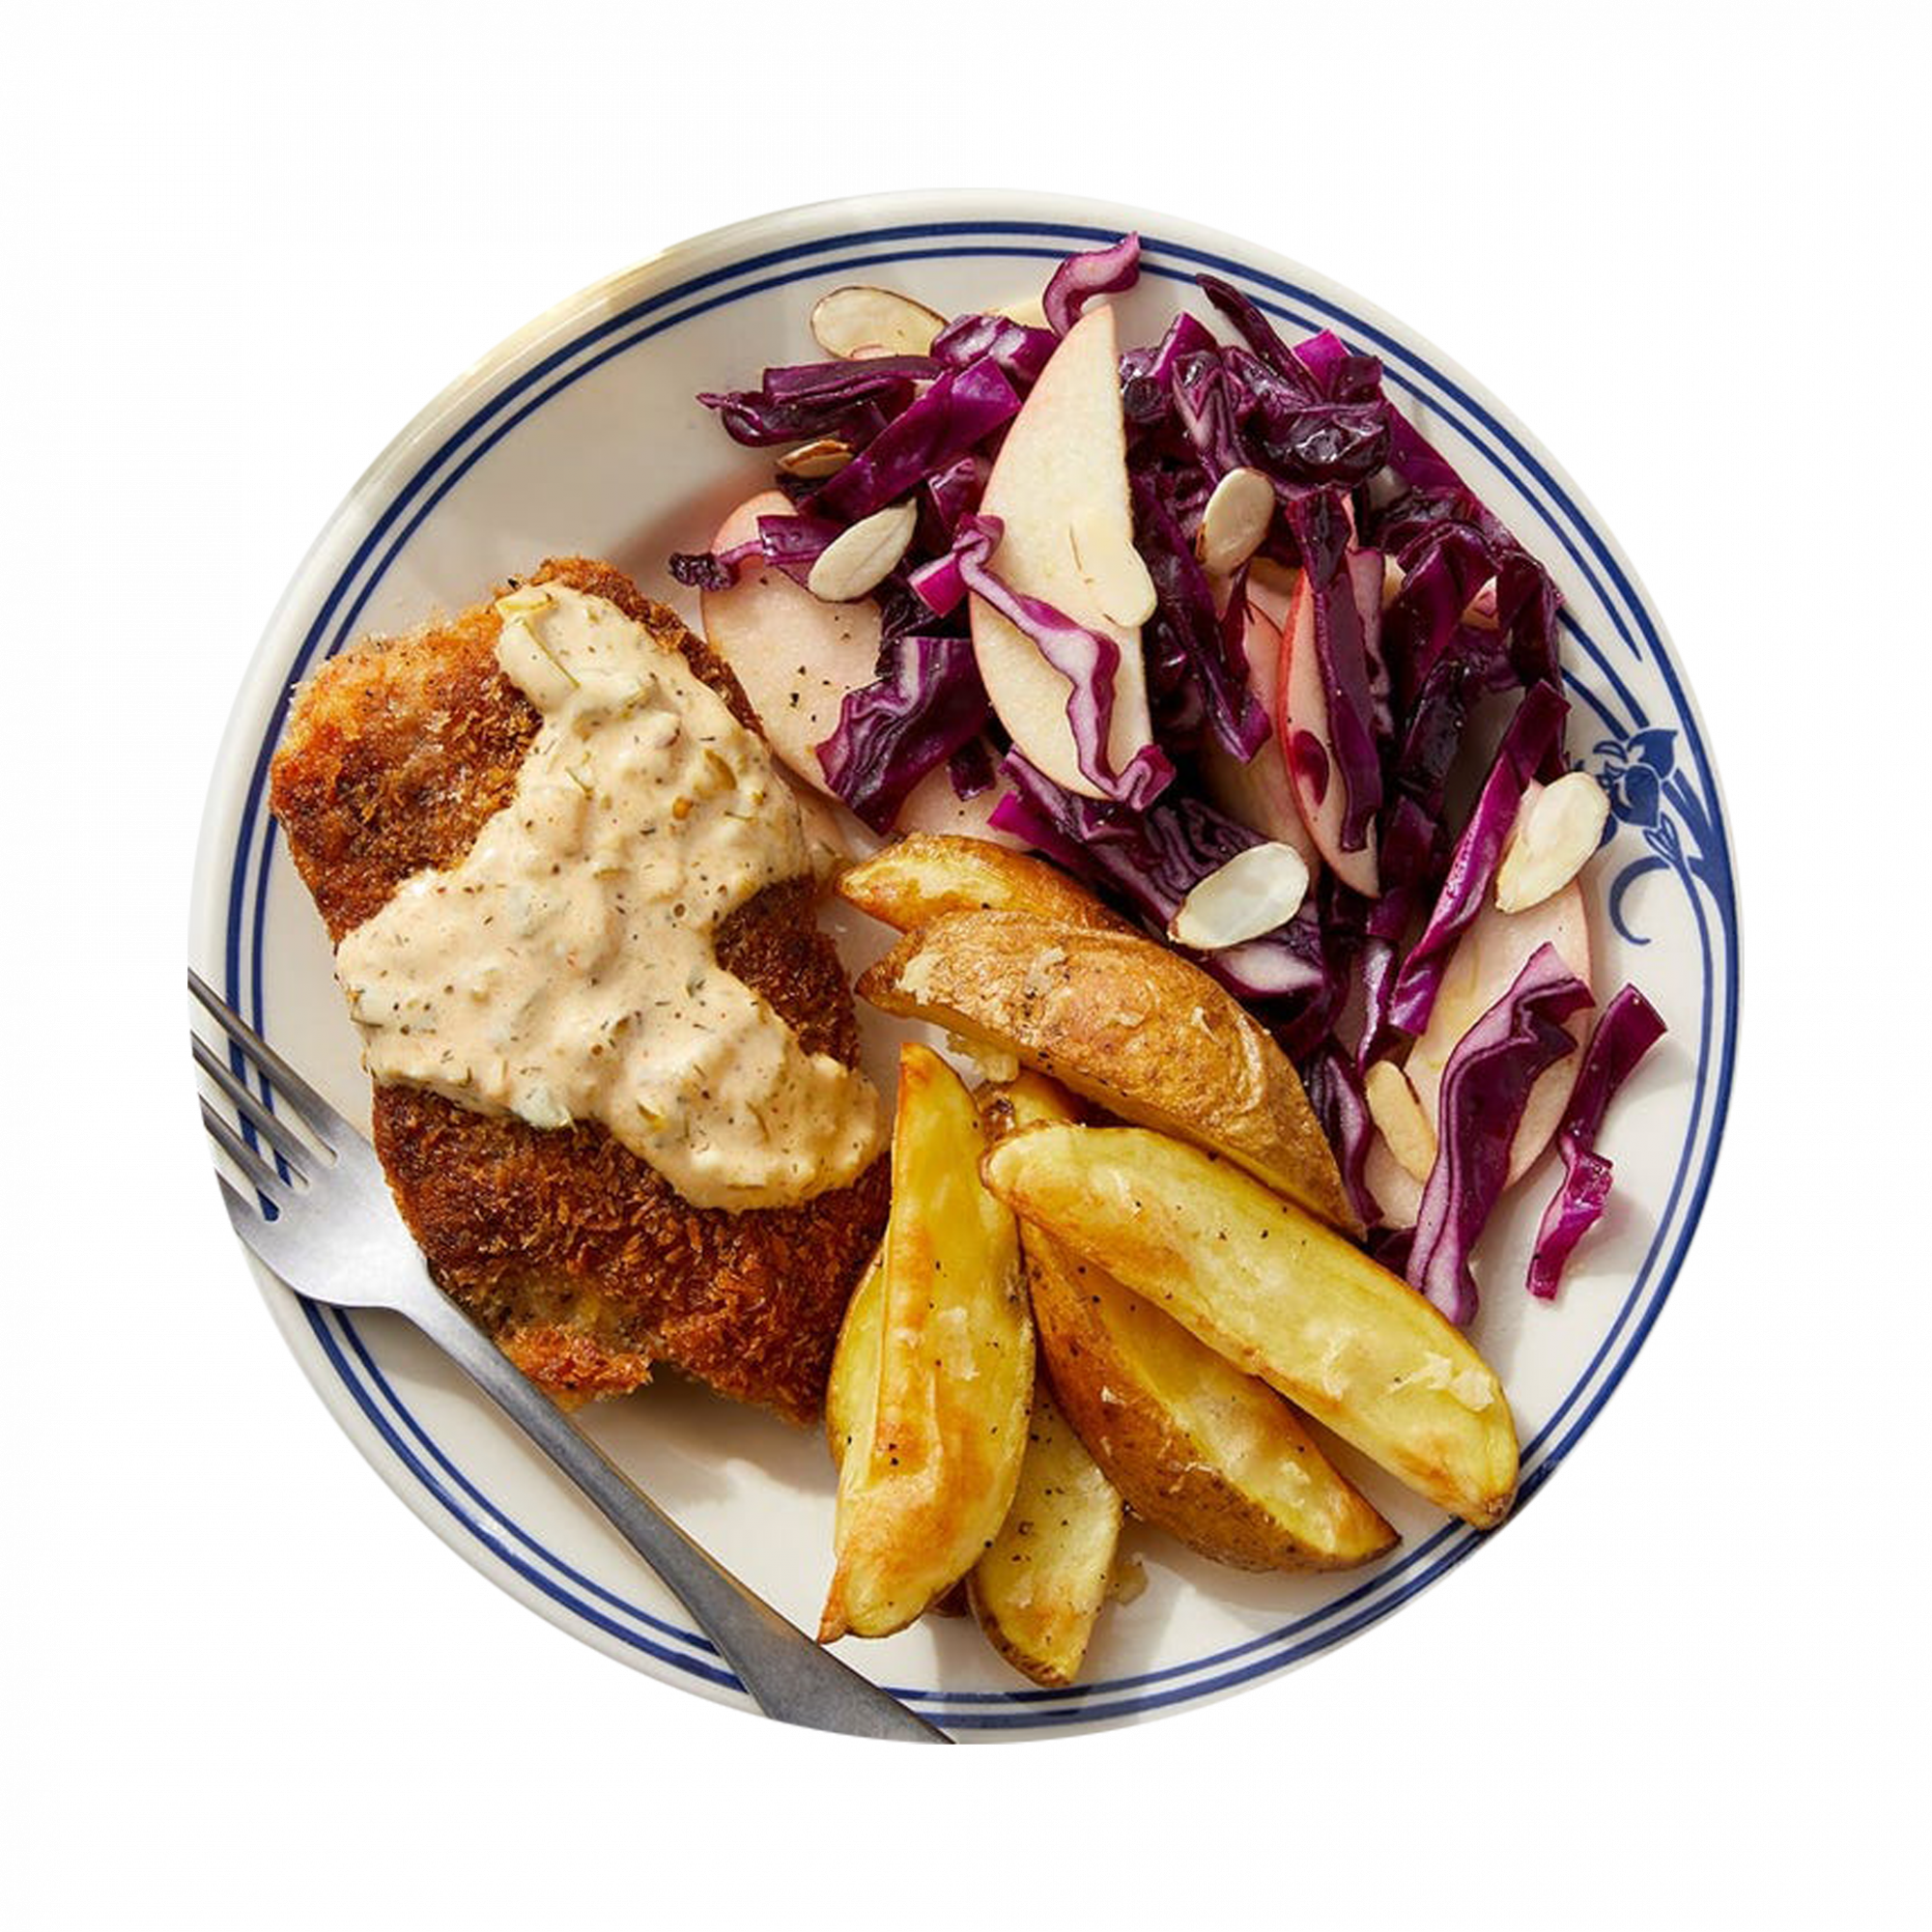 Baked Cajun Fish & Roasted Potatoes with Apple Cabbage Slaw